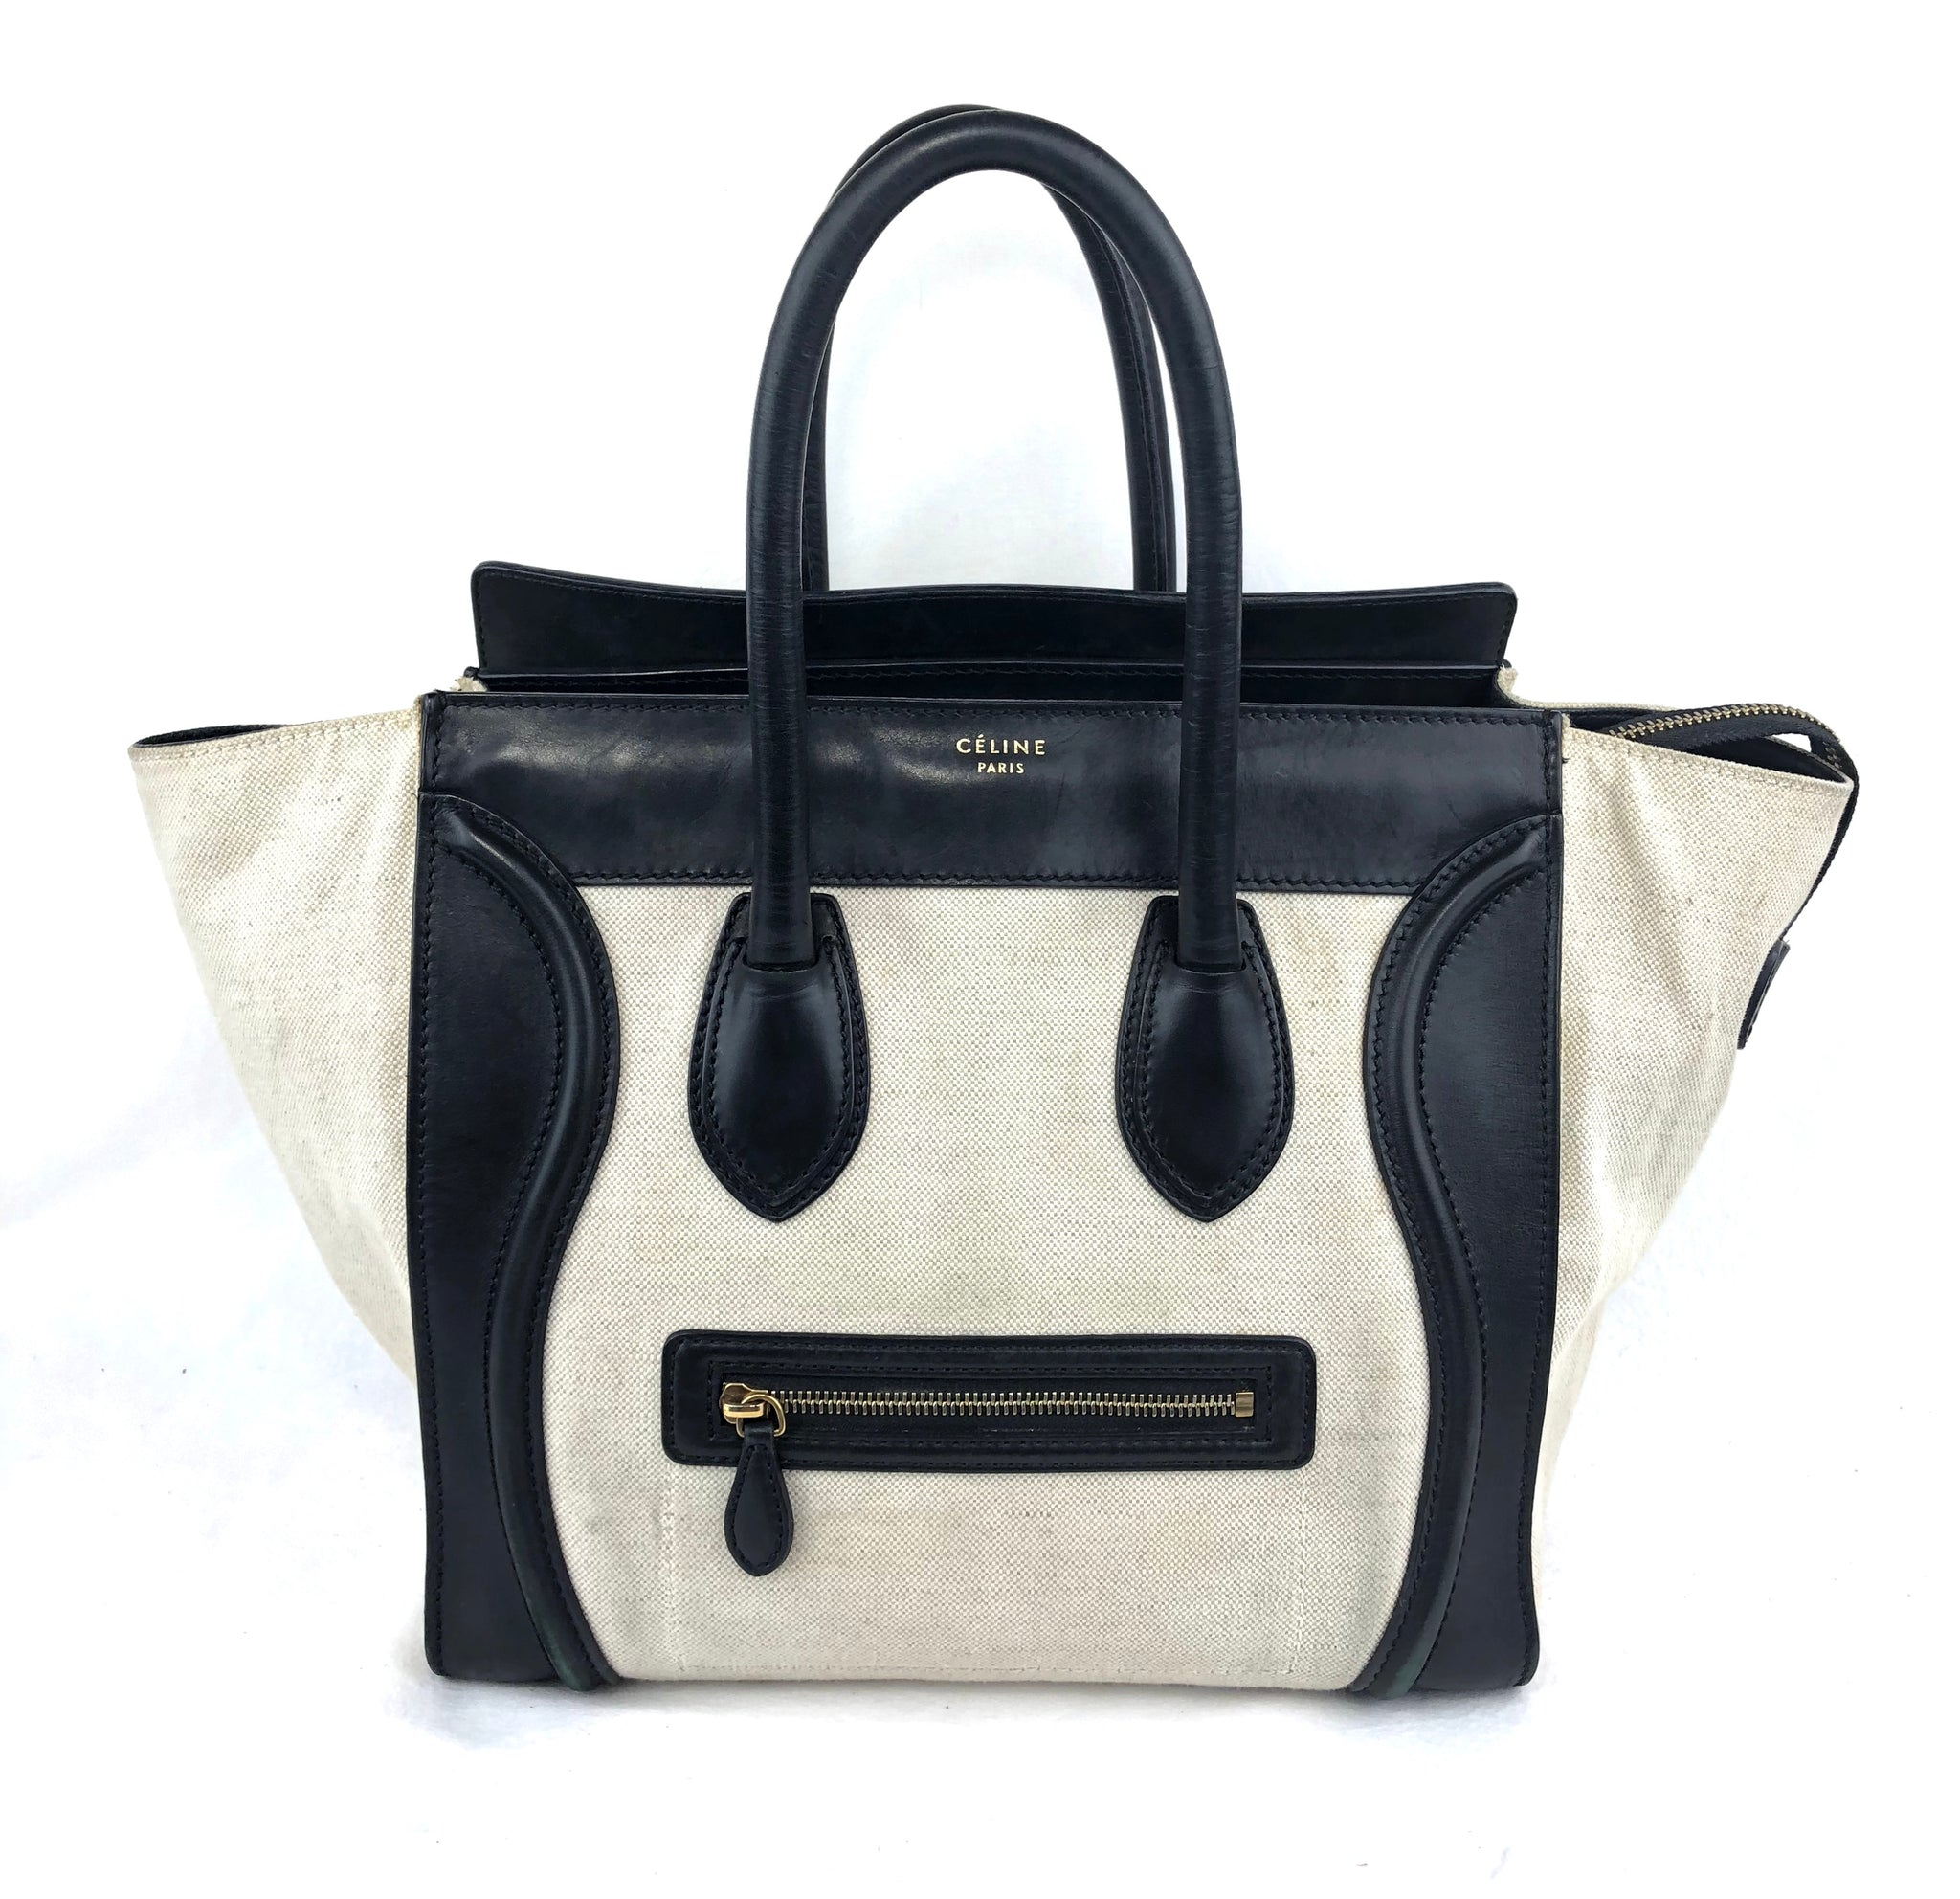 CELINE Luggage Tote Bag